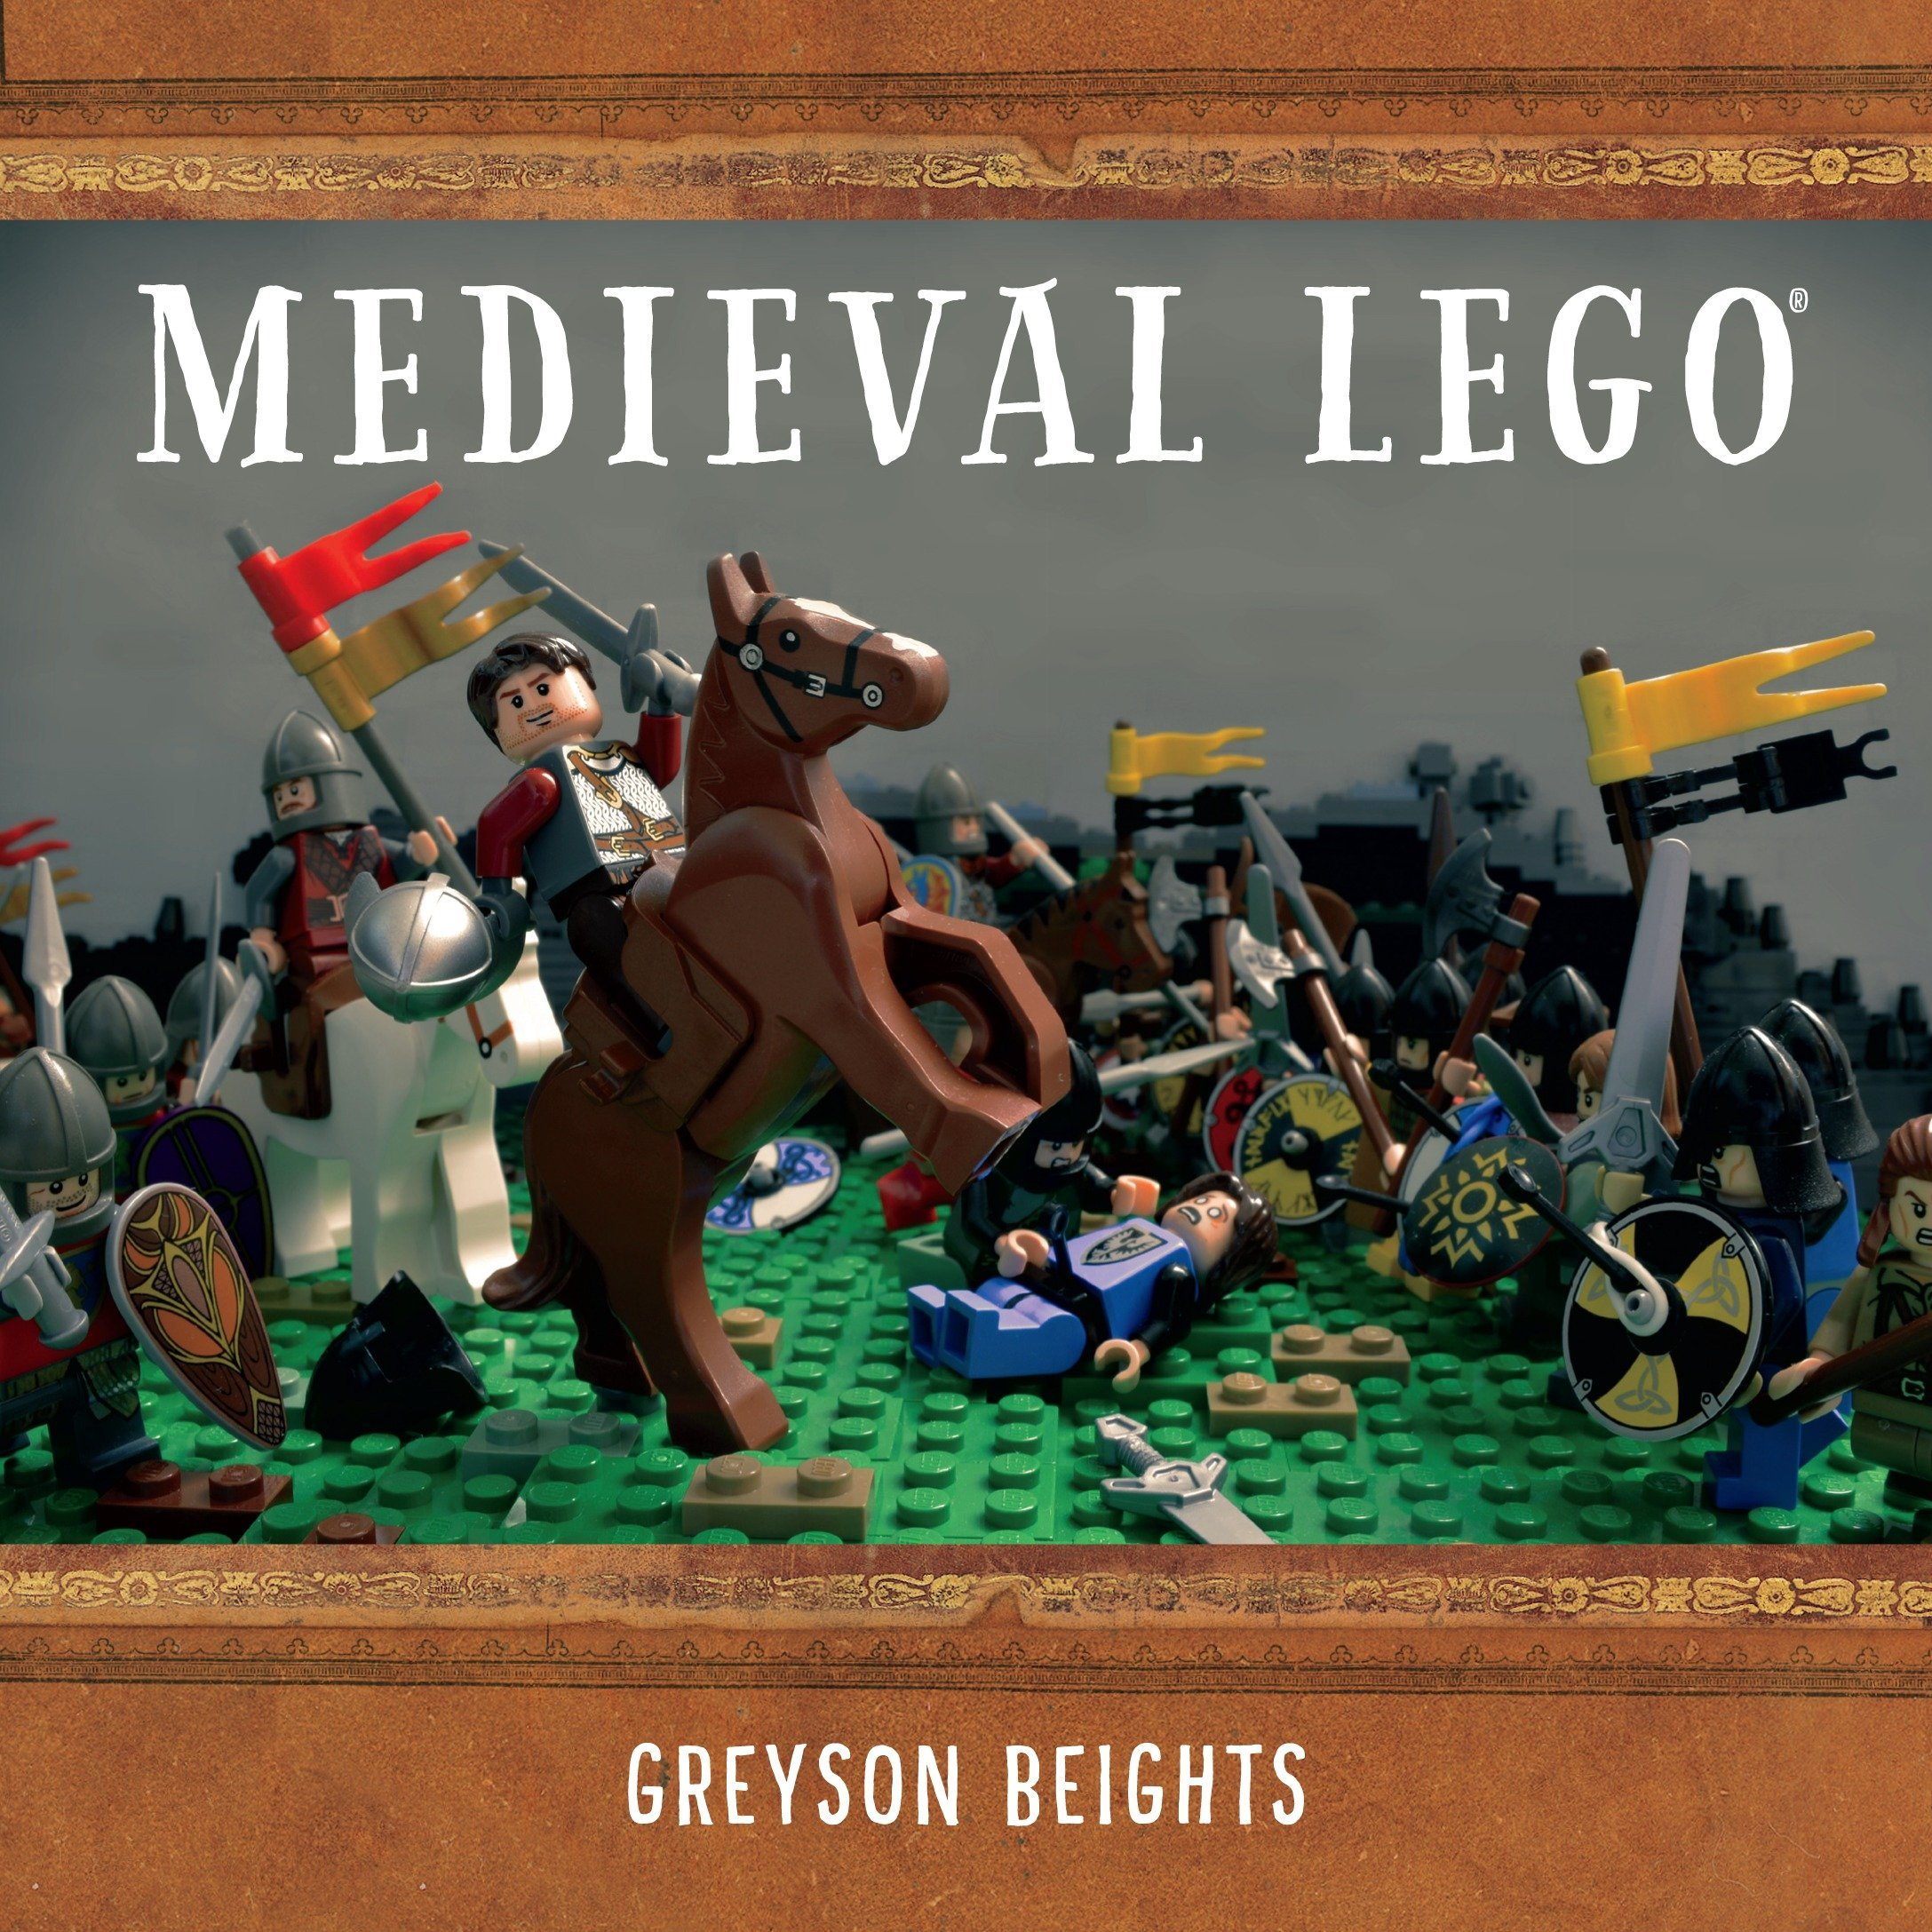 Medieval LEGO by No Starch Press (Image #1)